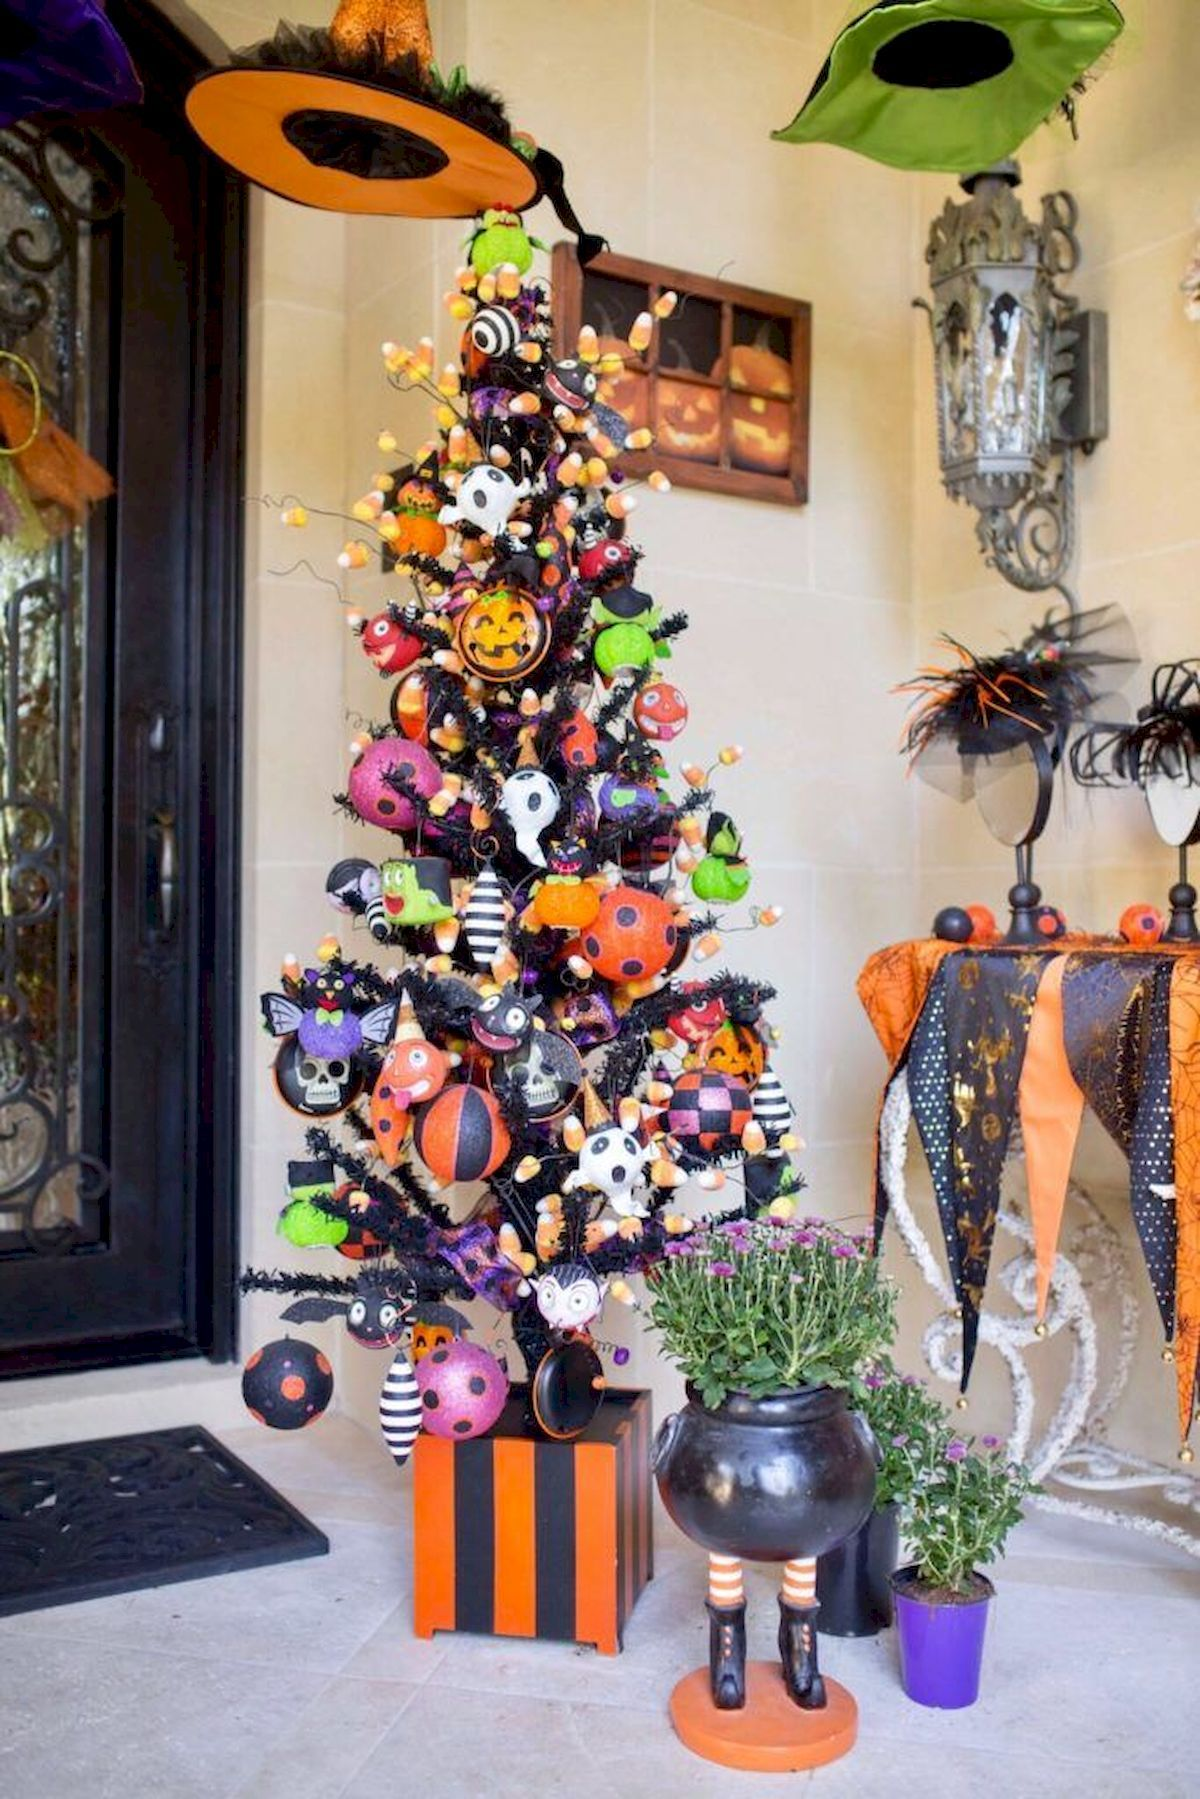 Awesome 75 Awesome Halloween Home Decor Ideas And Makeover Httpsworldecorco